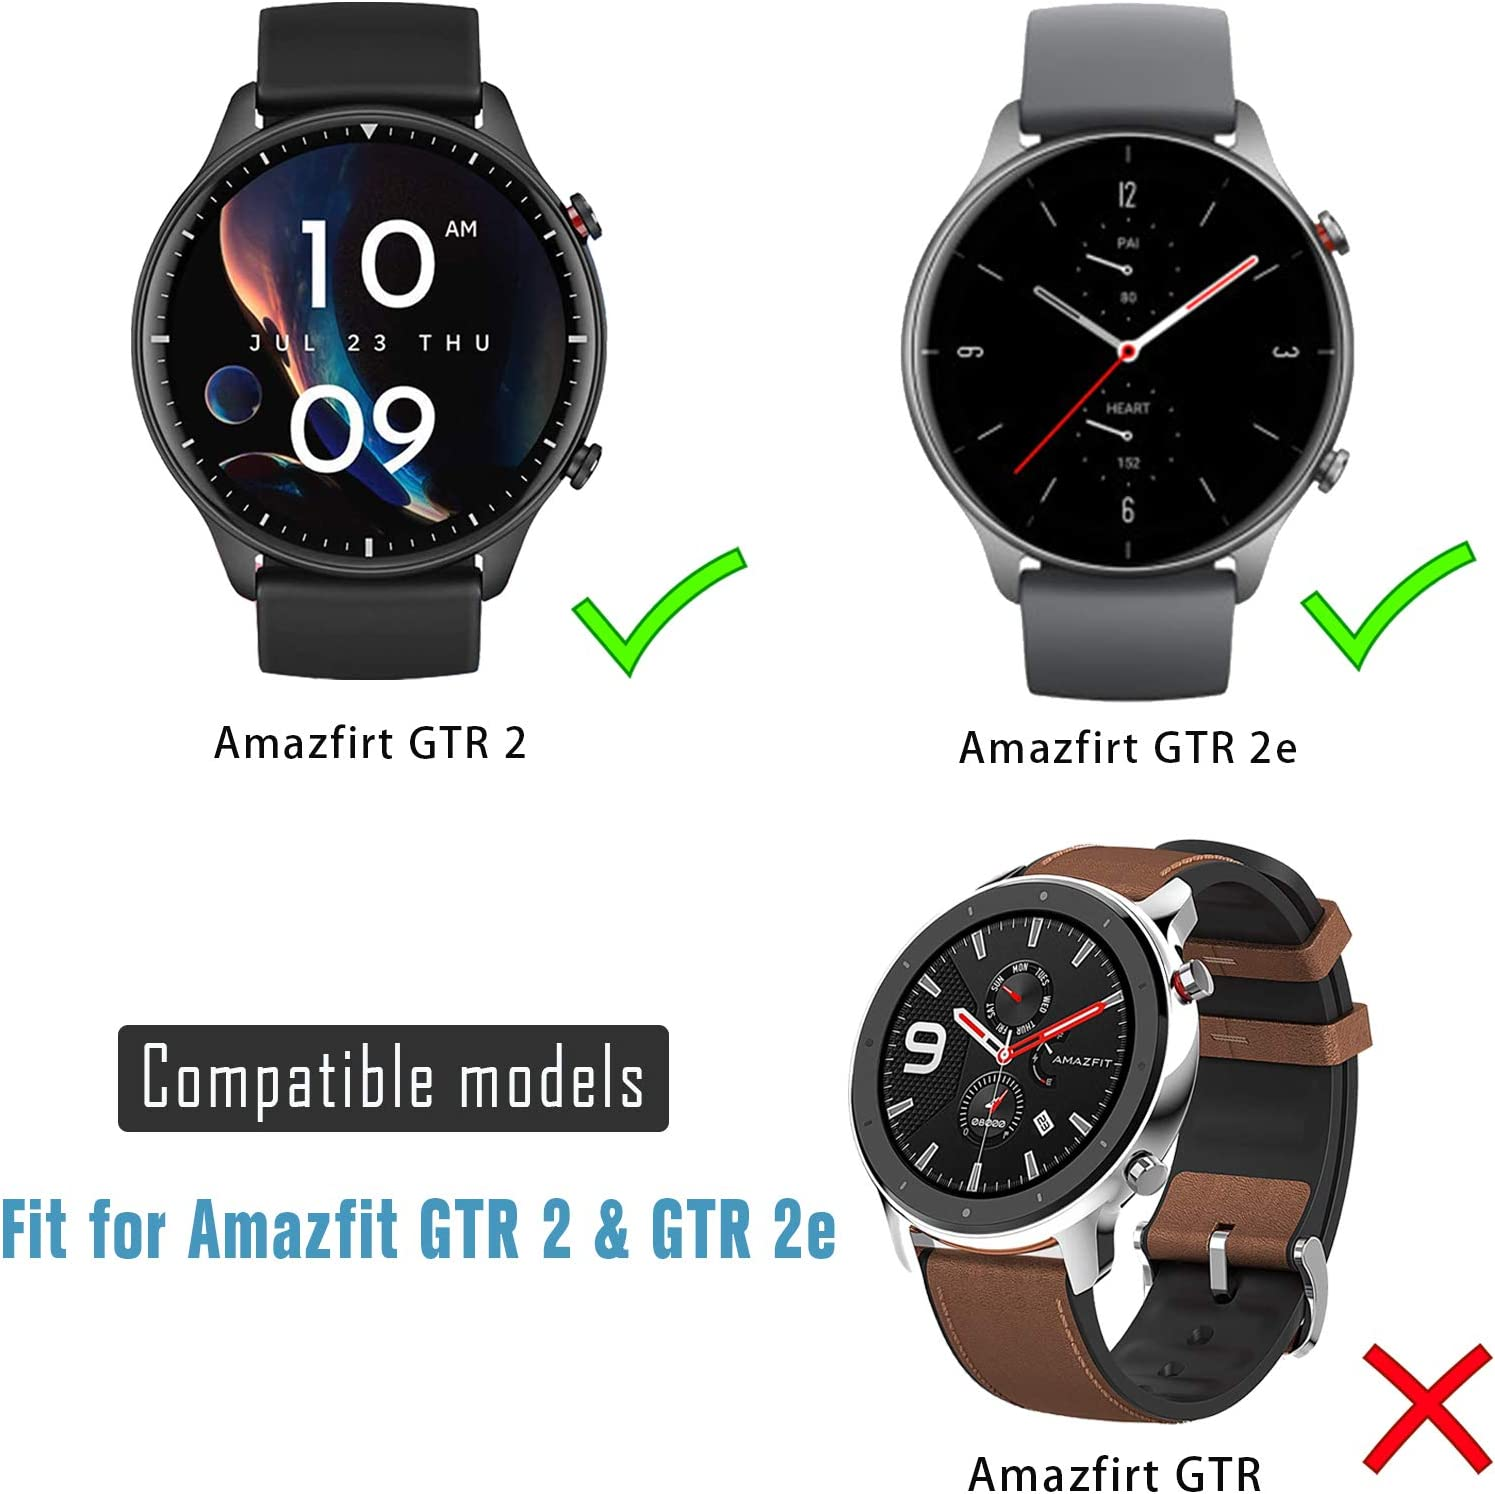 sciuU Protective Case compatible with Amazfit GTR 2, 2 Pack All-around Flexible TPU Case with Screen Protector Black Soft Frame Shock Resistant Cover fit Amazfit GTR2